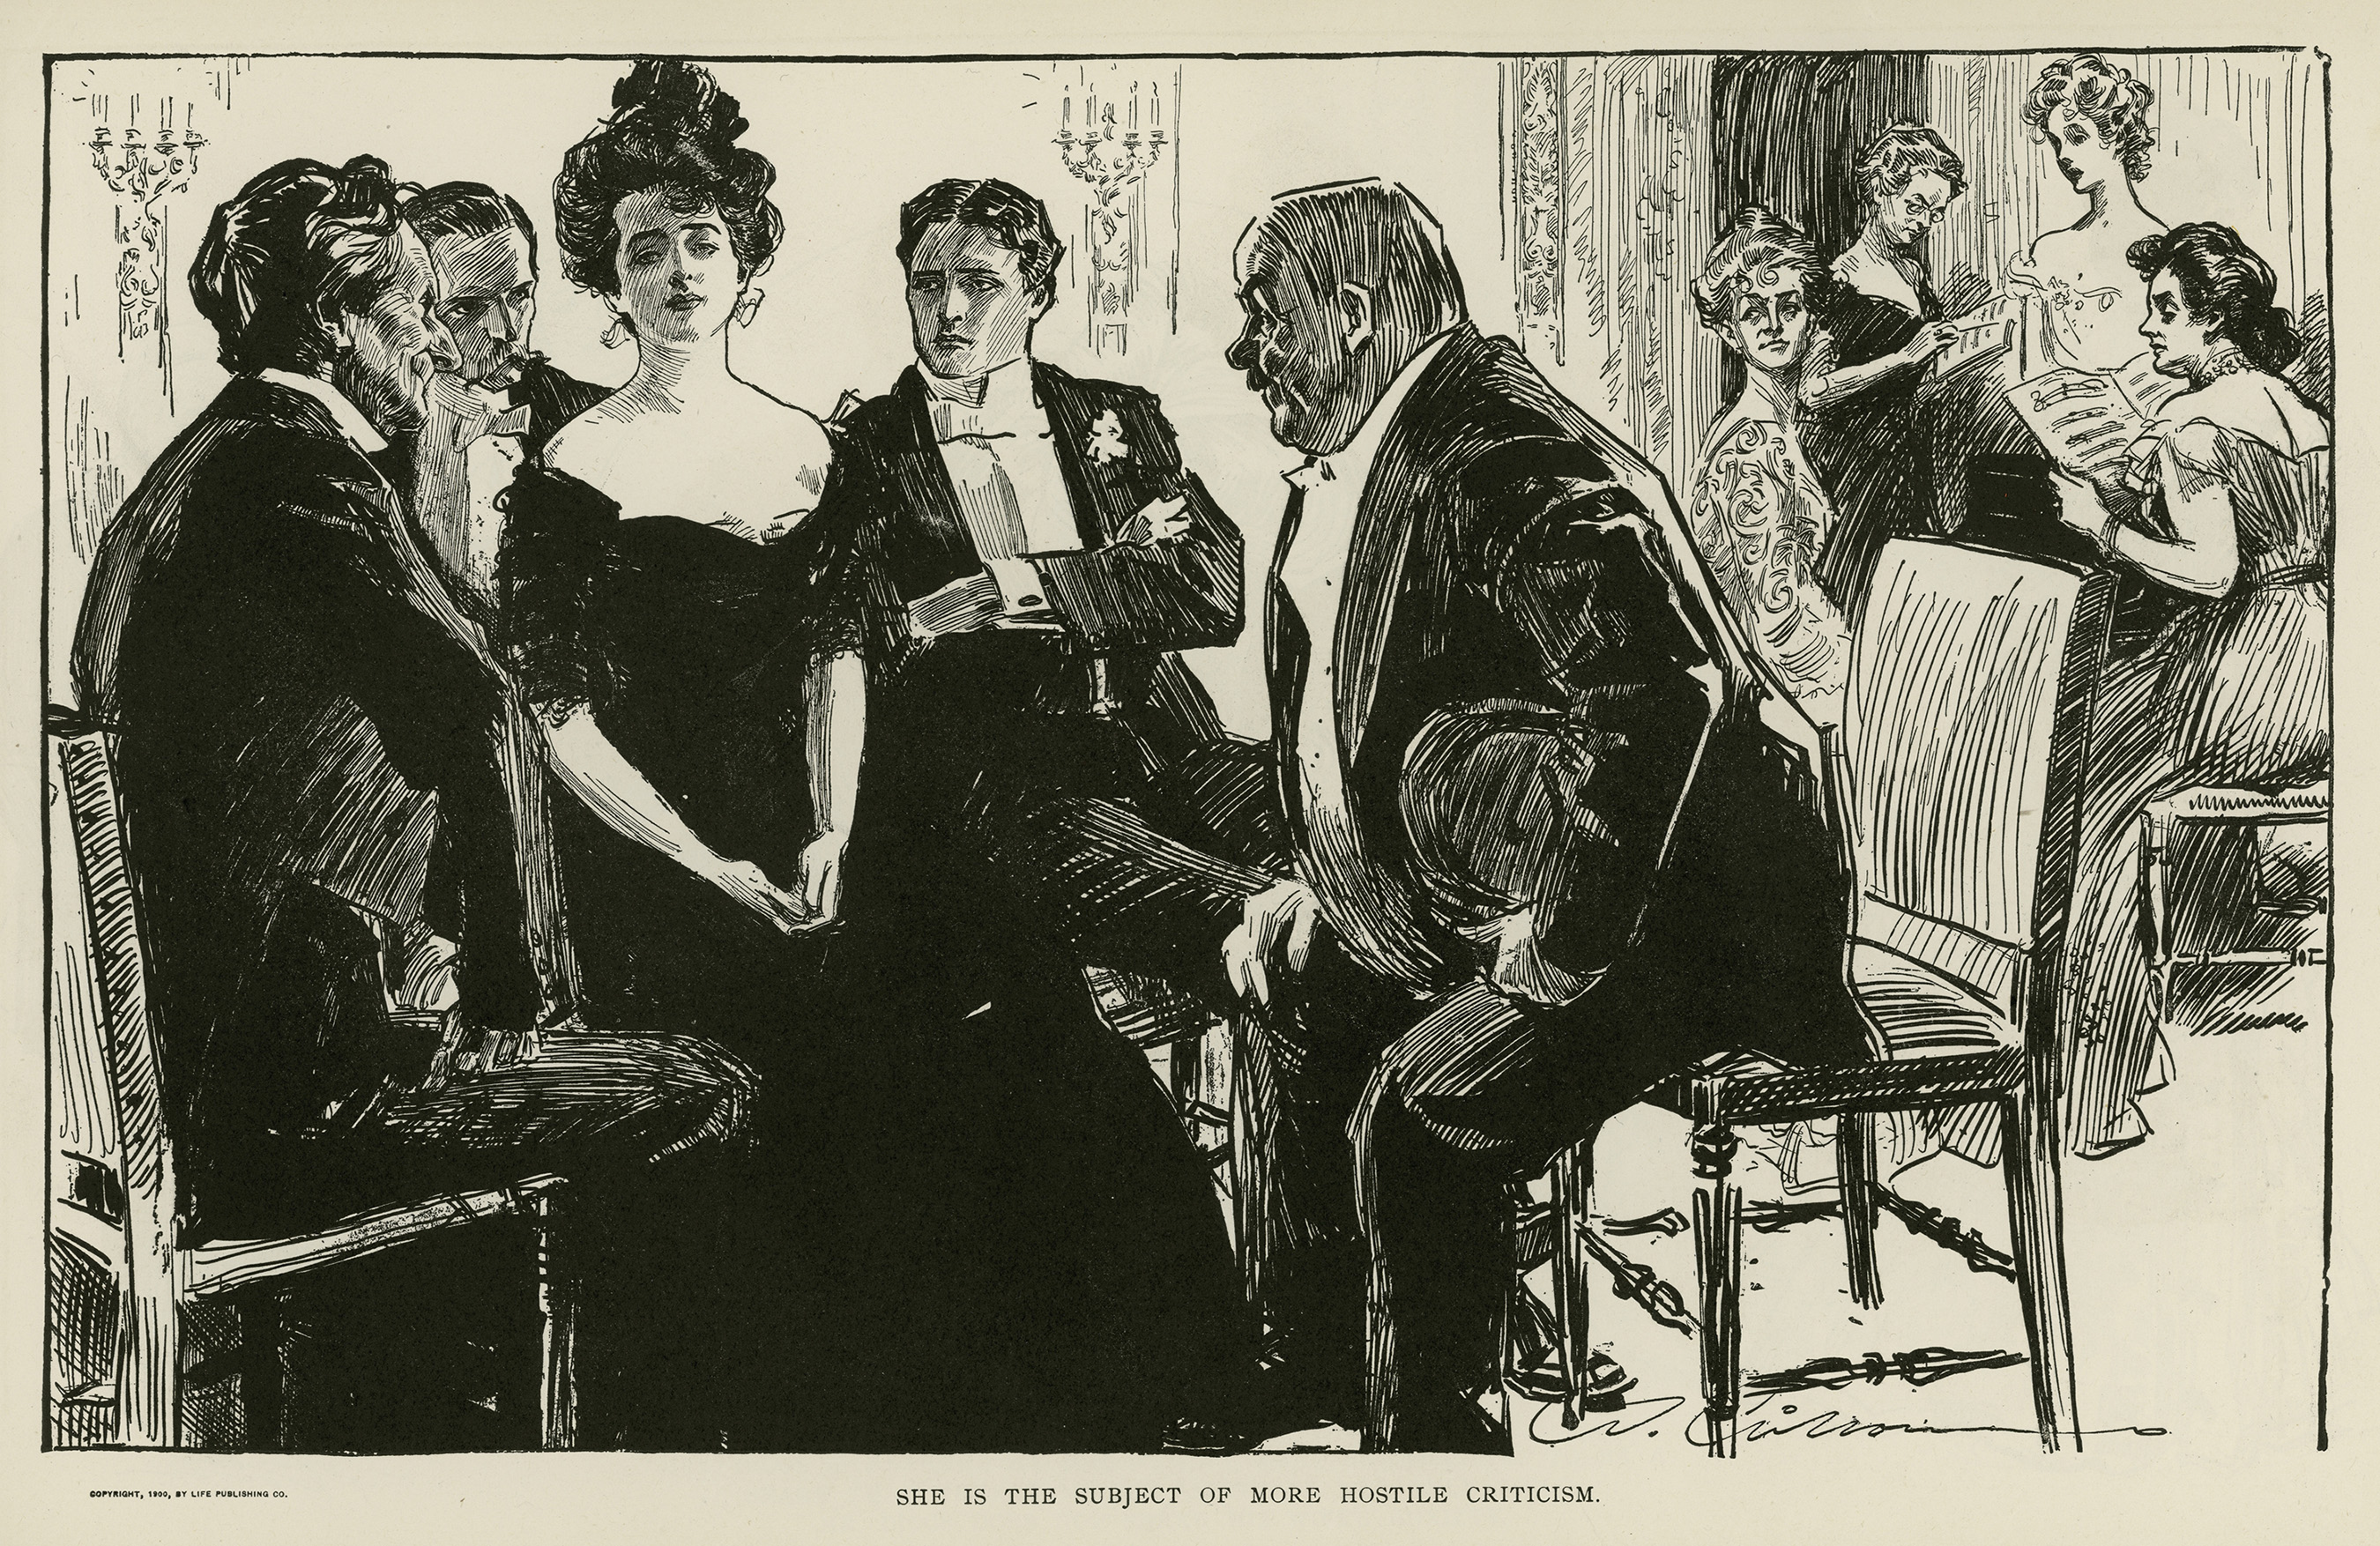 Charles Dana Gibson, illustration from A Widow and Her Friends, published in Life, 1900.